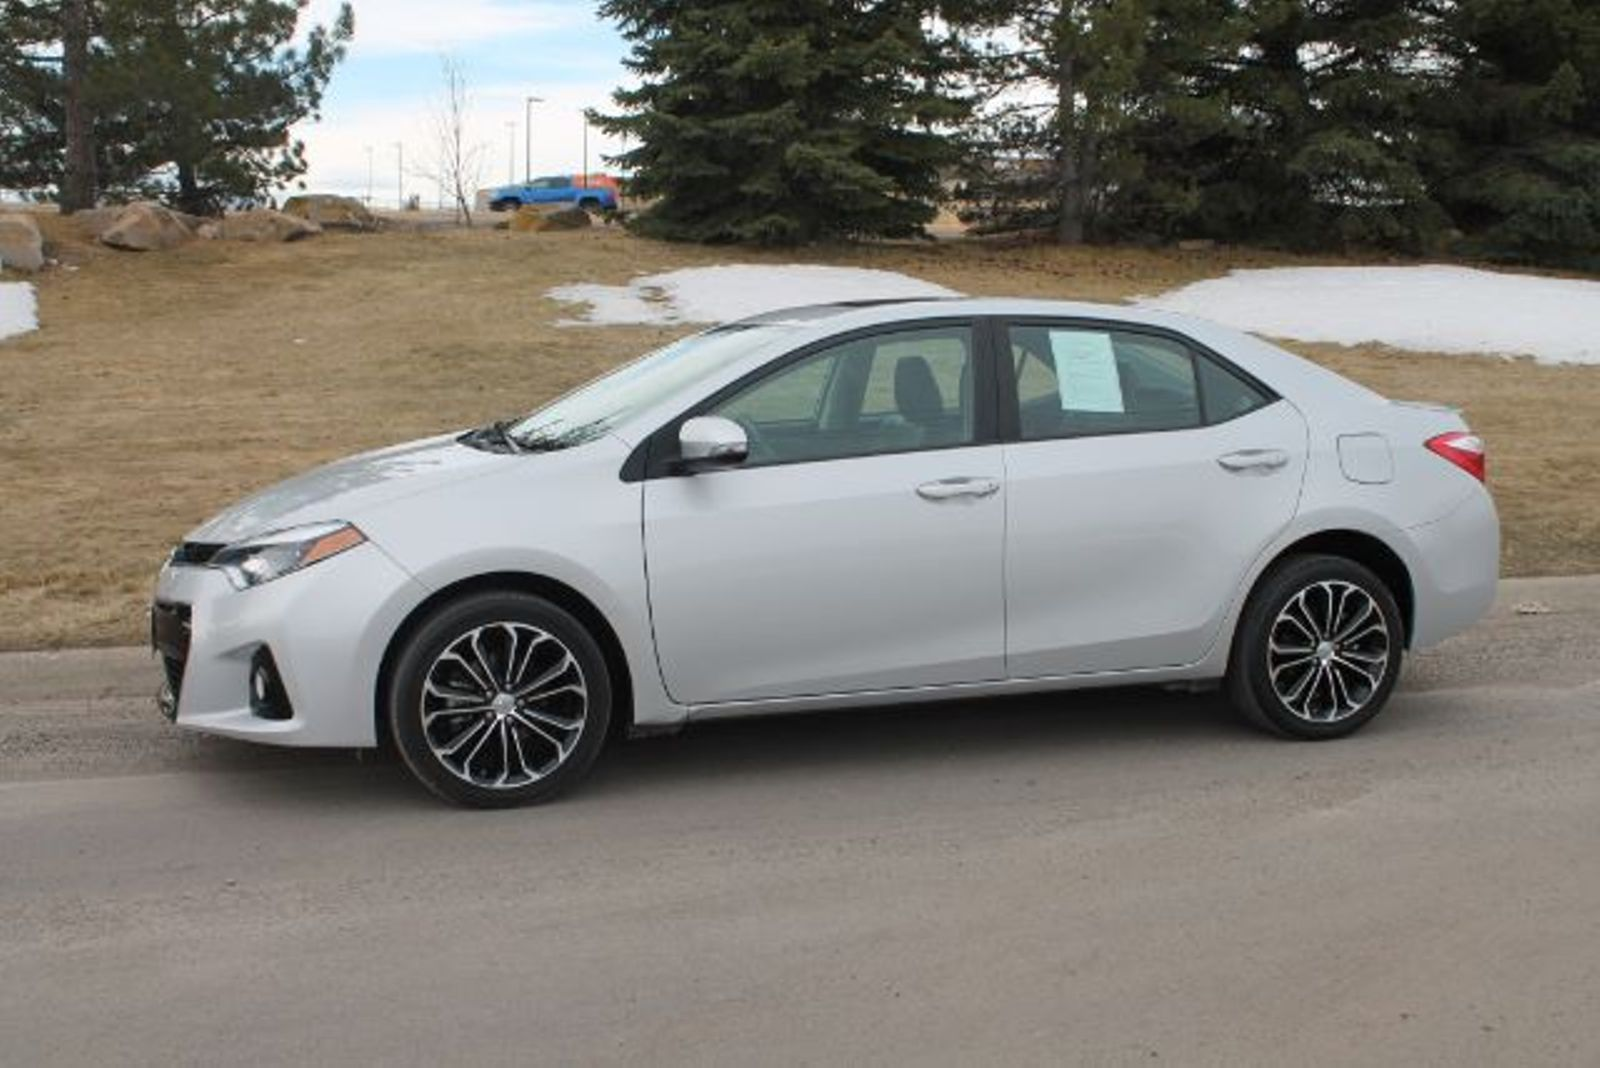 2017 Toyota Corolla S Cvt City Mt Bleskin Motor Company. 2003 Buick Century  Custom Sedan Great Falls Mt